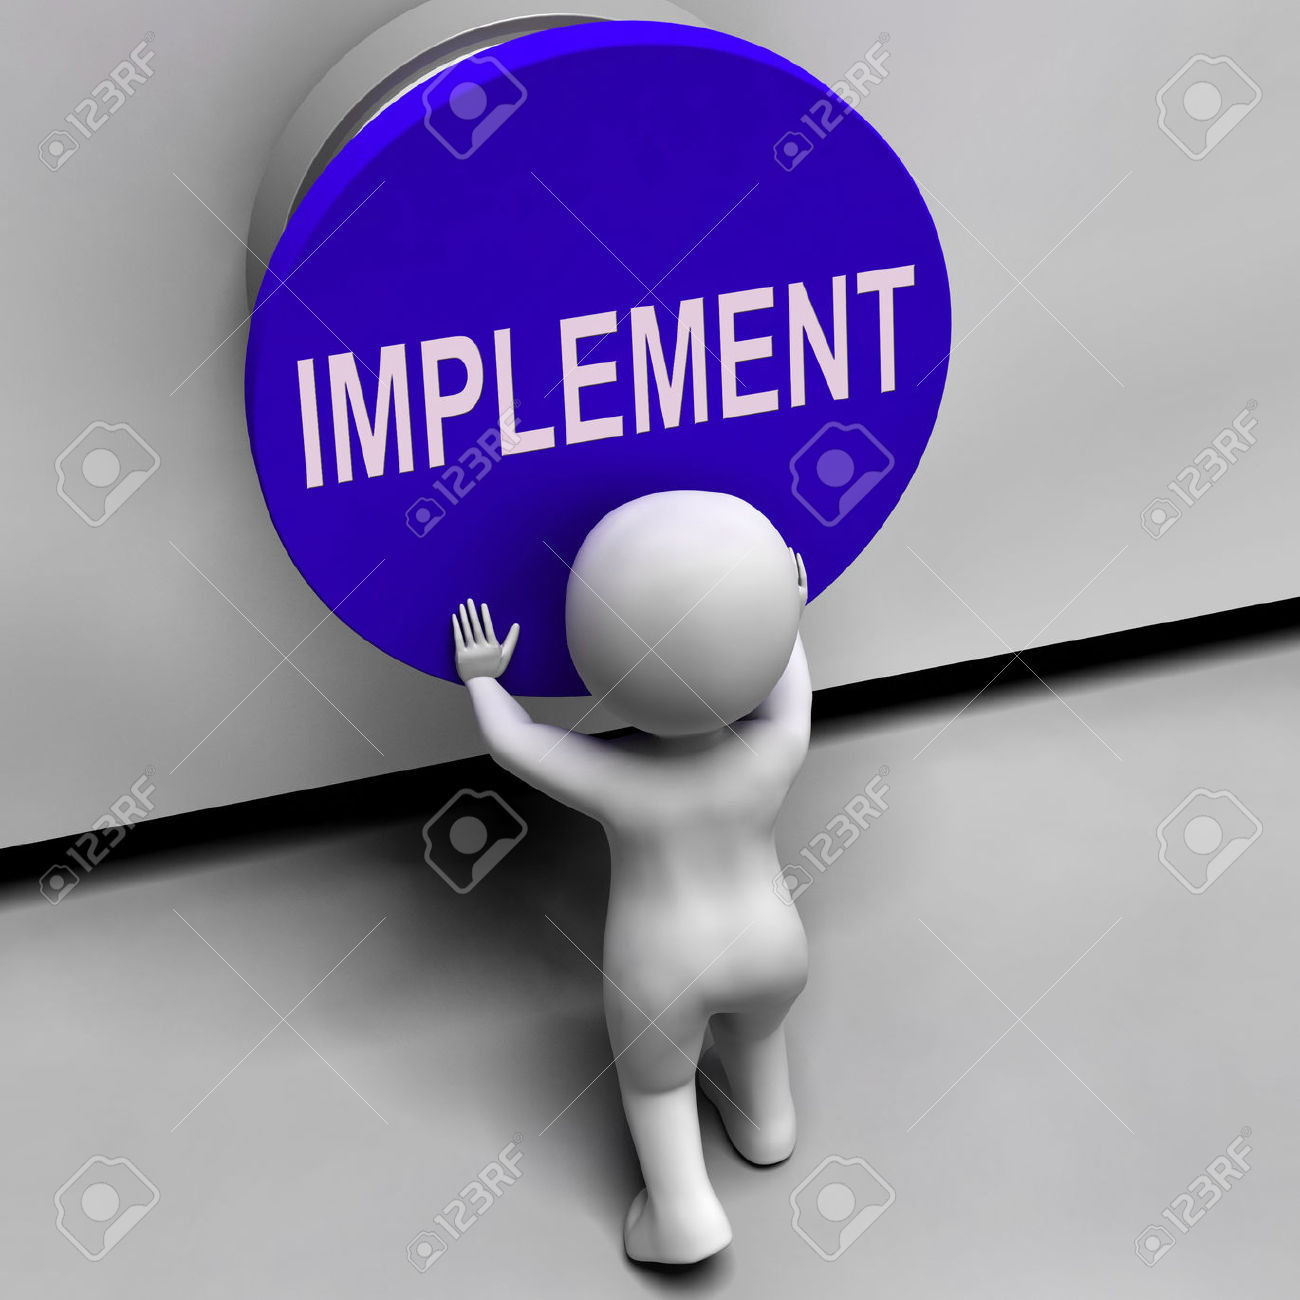 Implement Button Meaning Do Apply Or Execution Stock Photo.